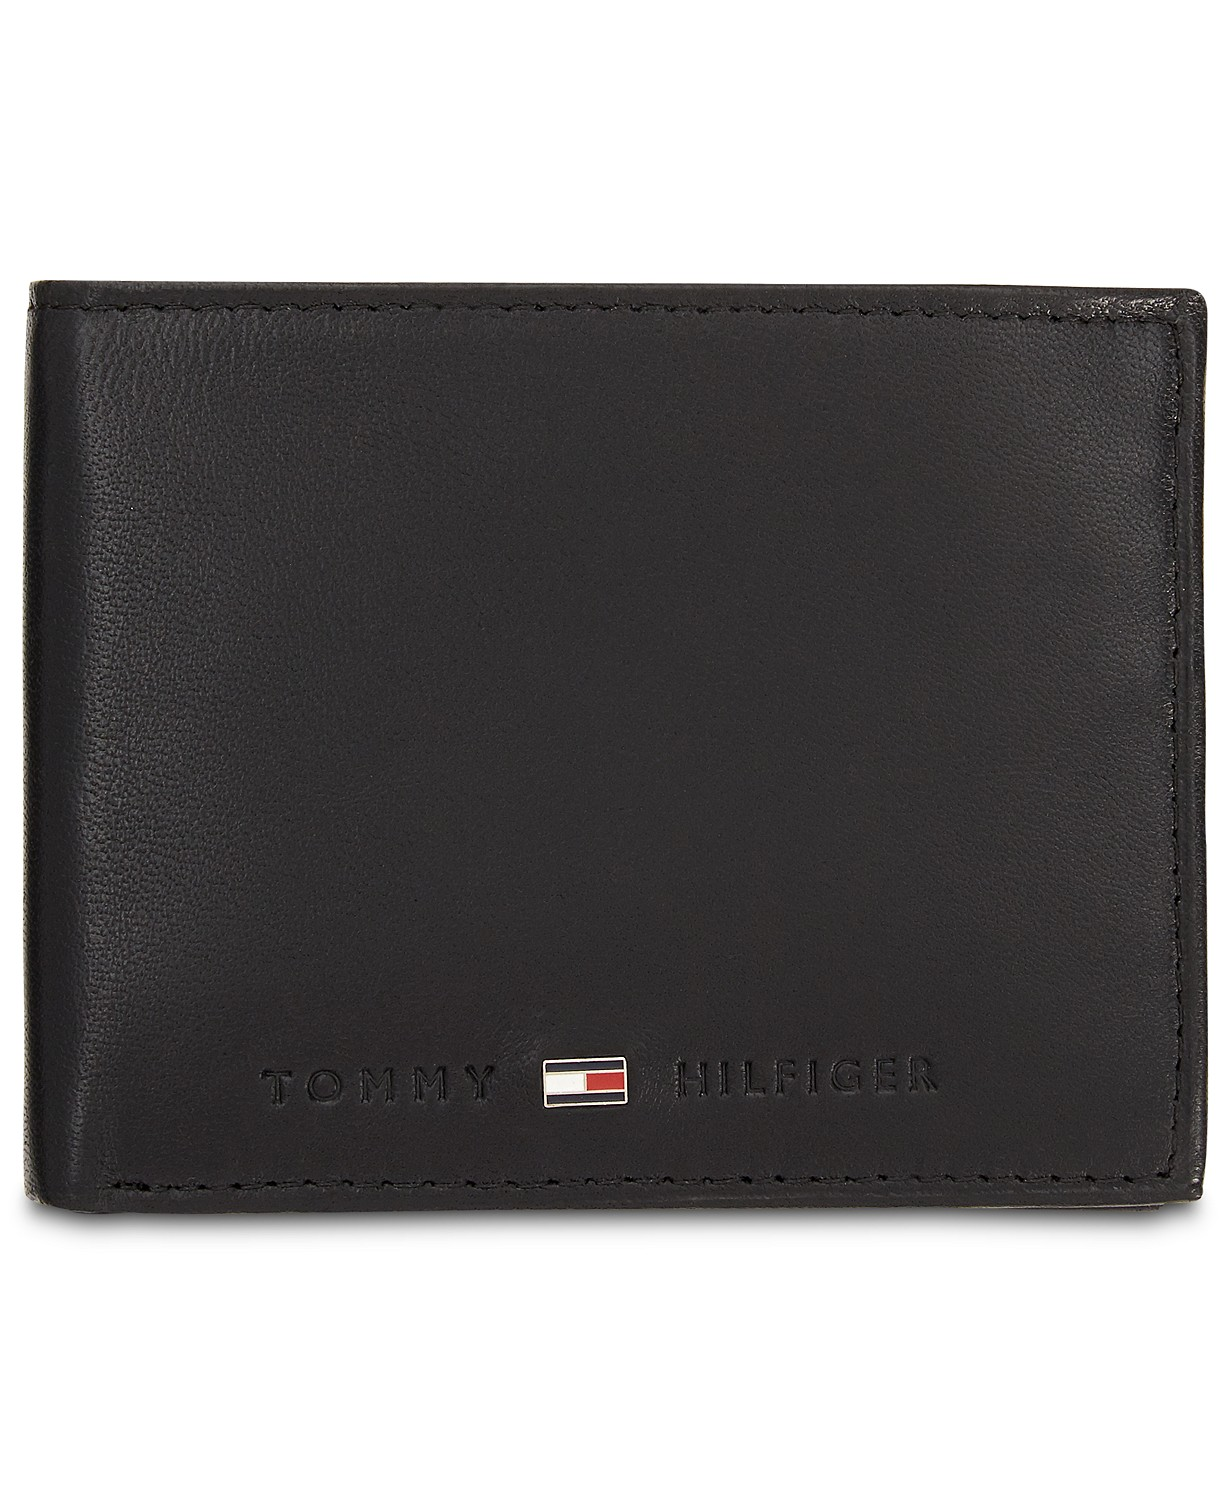 Tommy Hilfiger Men's Rfid Blocking Brax Leather Traveler Wallet